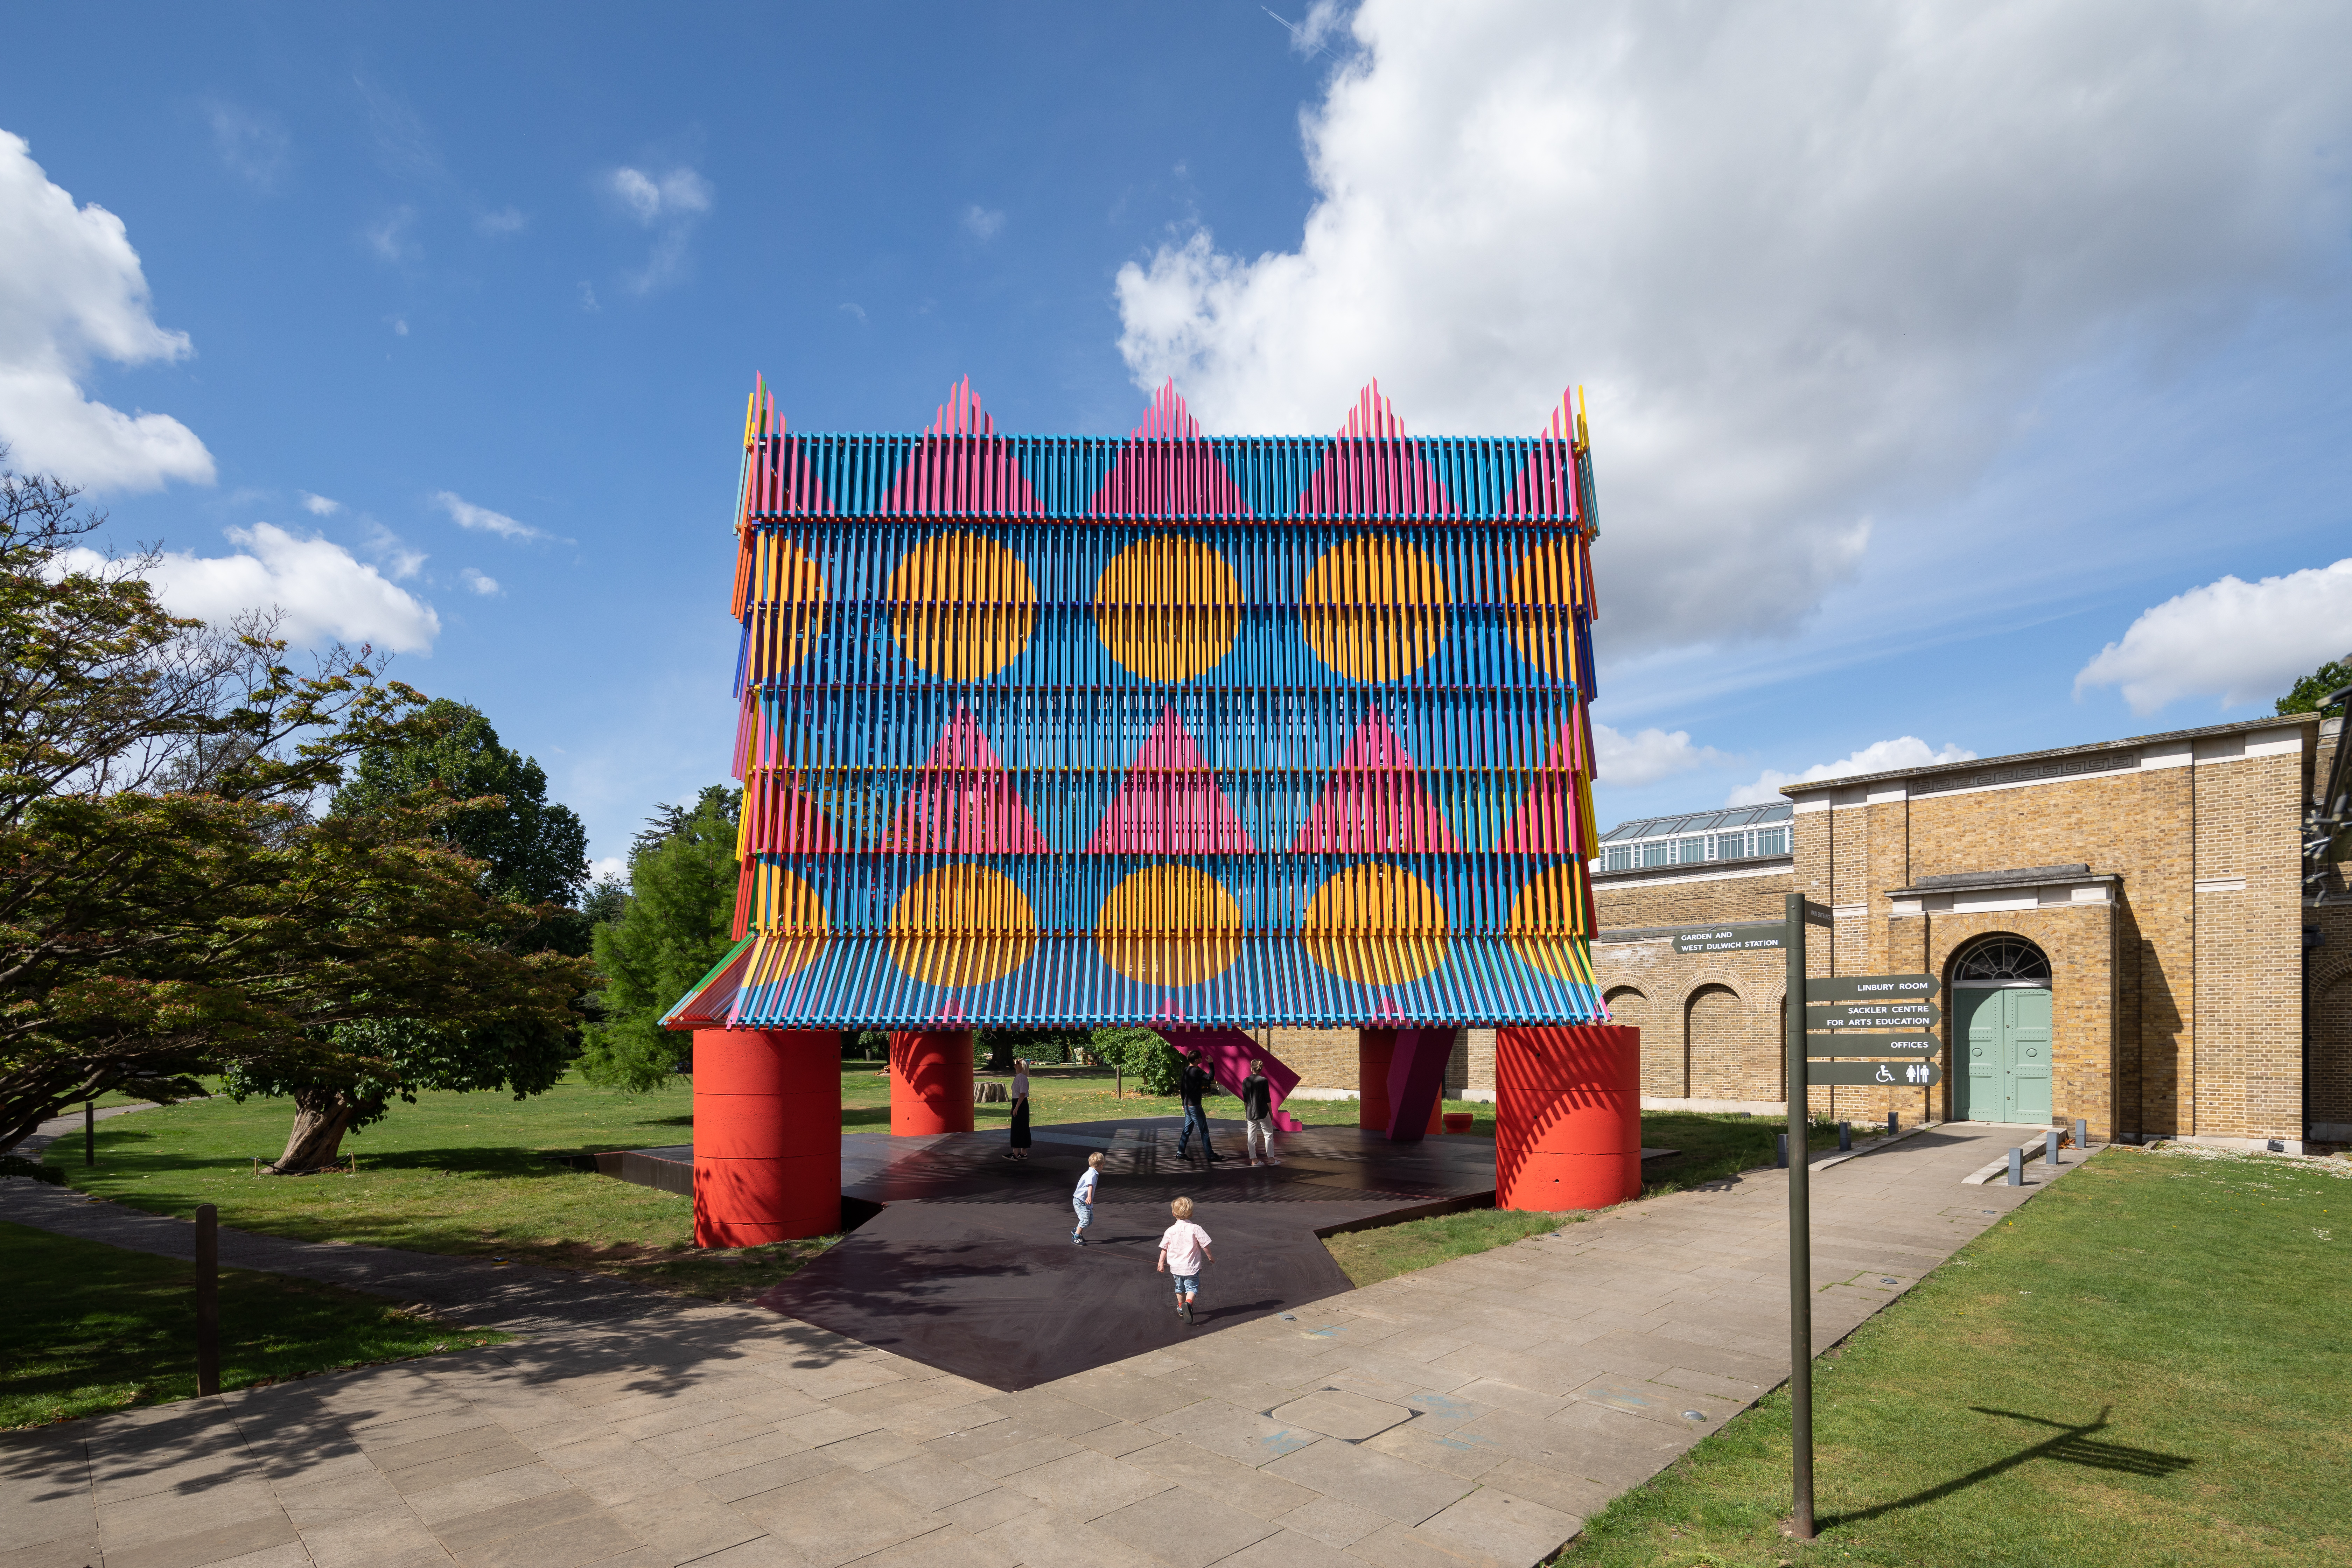 London's 'Color Palace' is the jolt of energy architecture needs